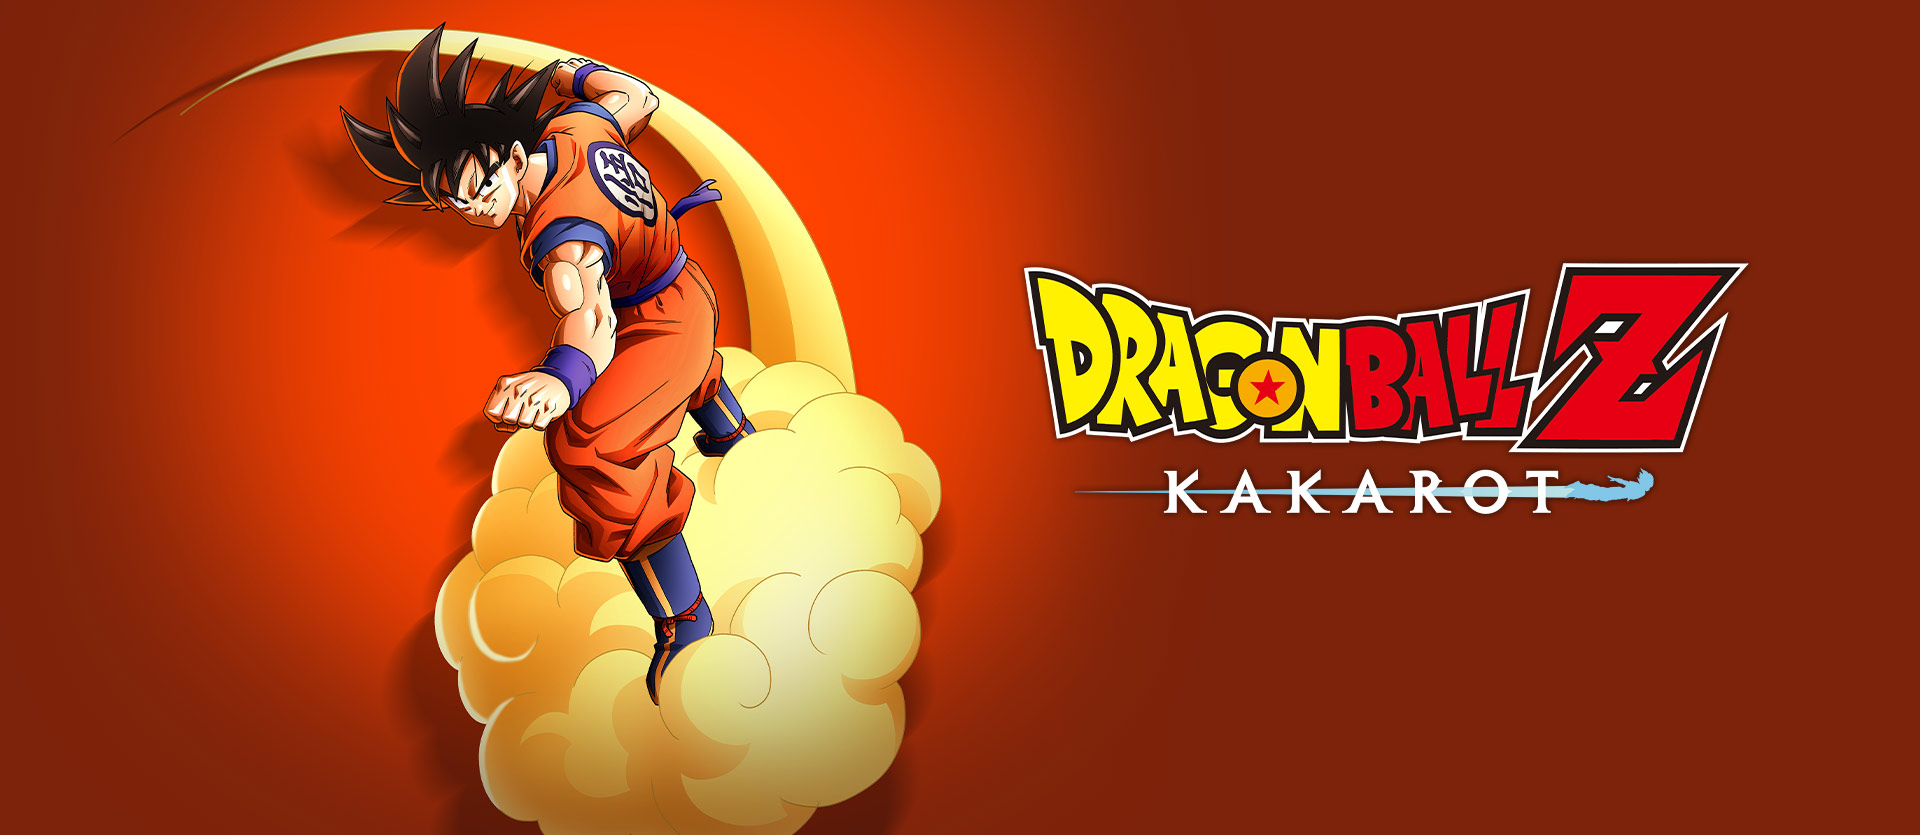 Dragon Ball Z: Kakarot, Dragon Ball Z: Kakarot – logo z Goku na chmurze